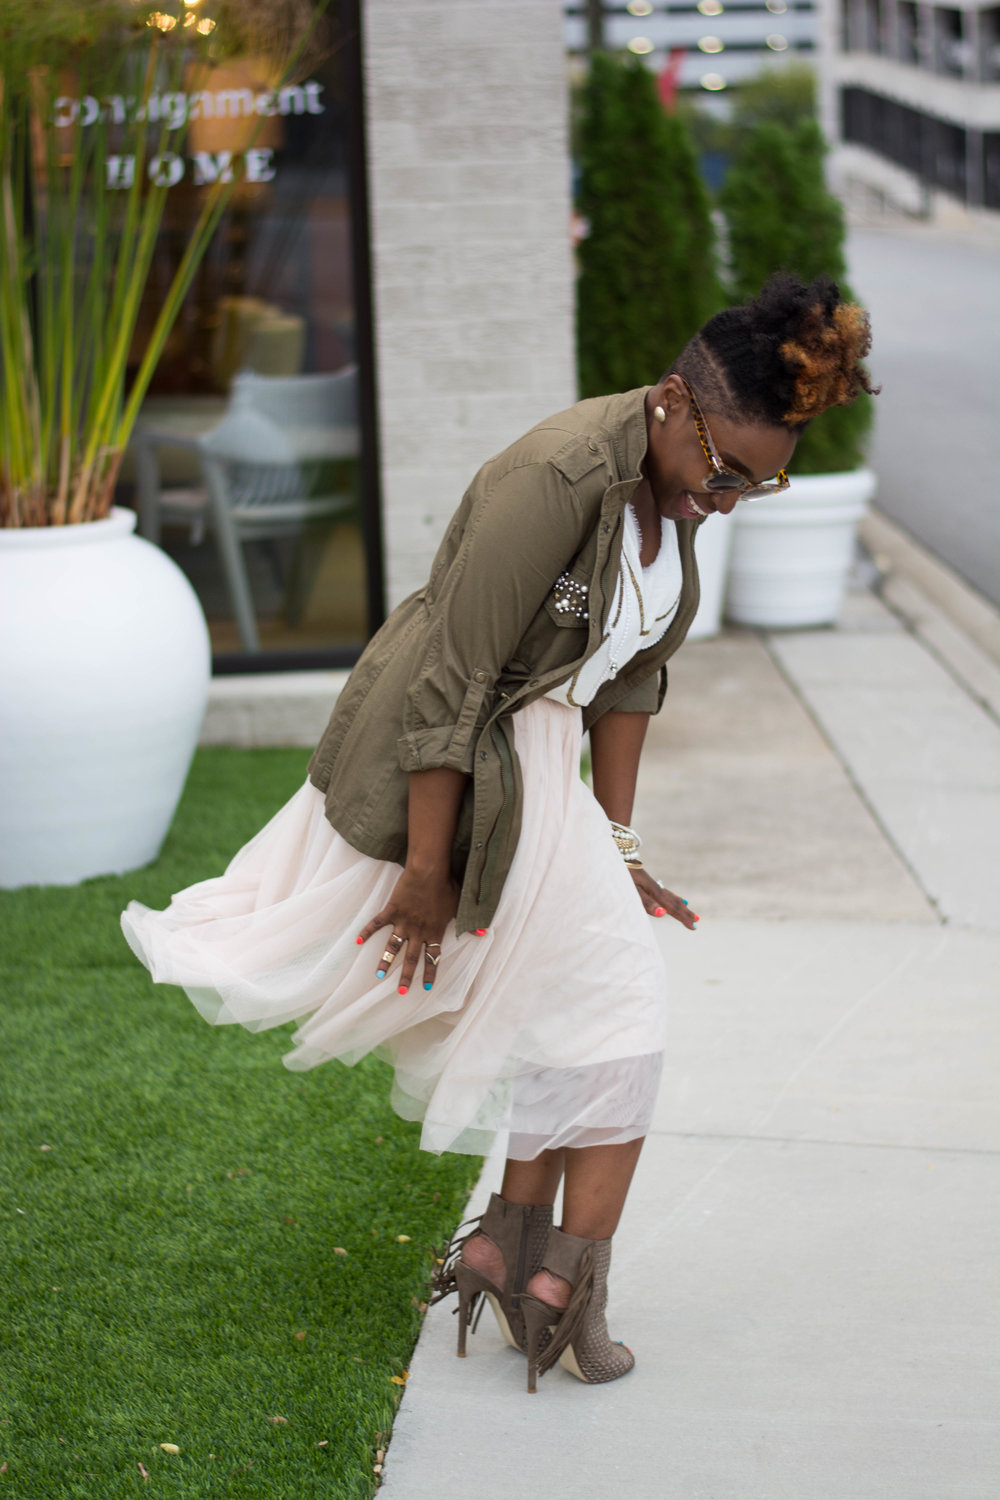 The Style Klazit, Melodie Stewart, Atlanta Style blogger, Atlanta Stylist, Tulle skirt, Fall fashion, Cargo jacket